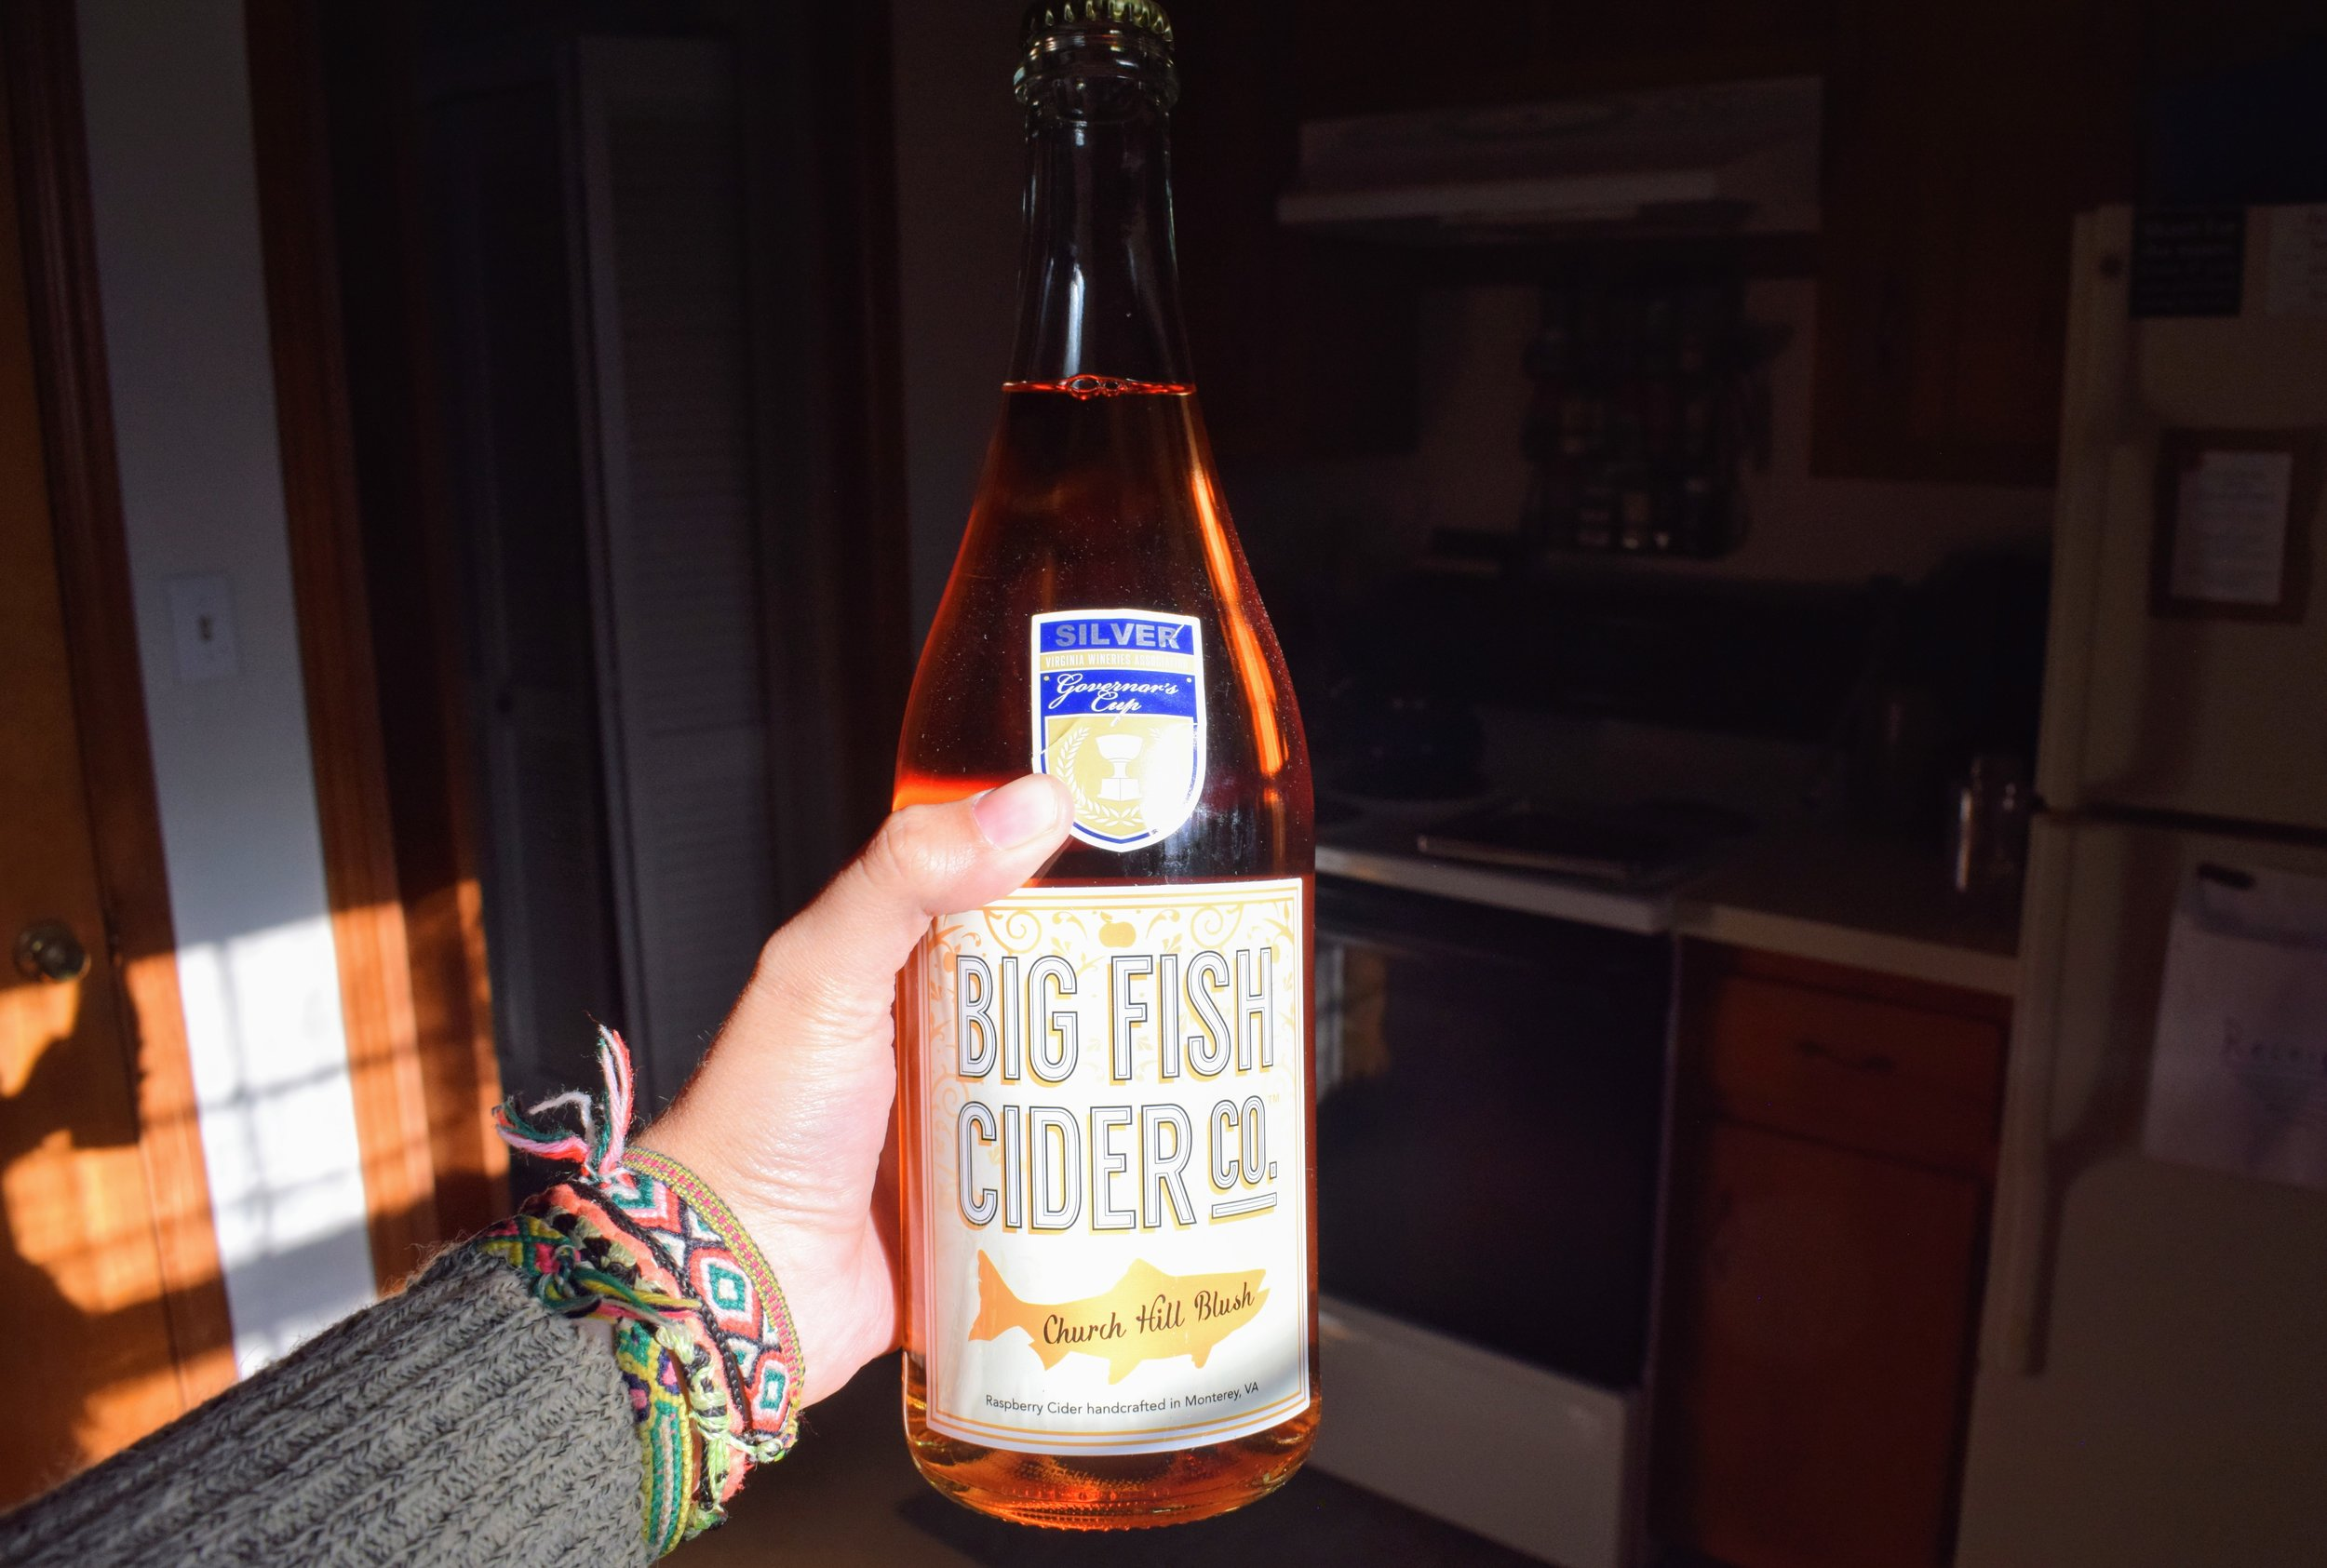 A bottle of the Church Hill Blush cider.